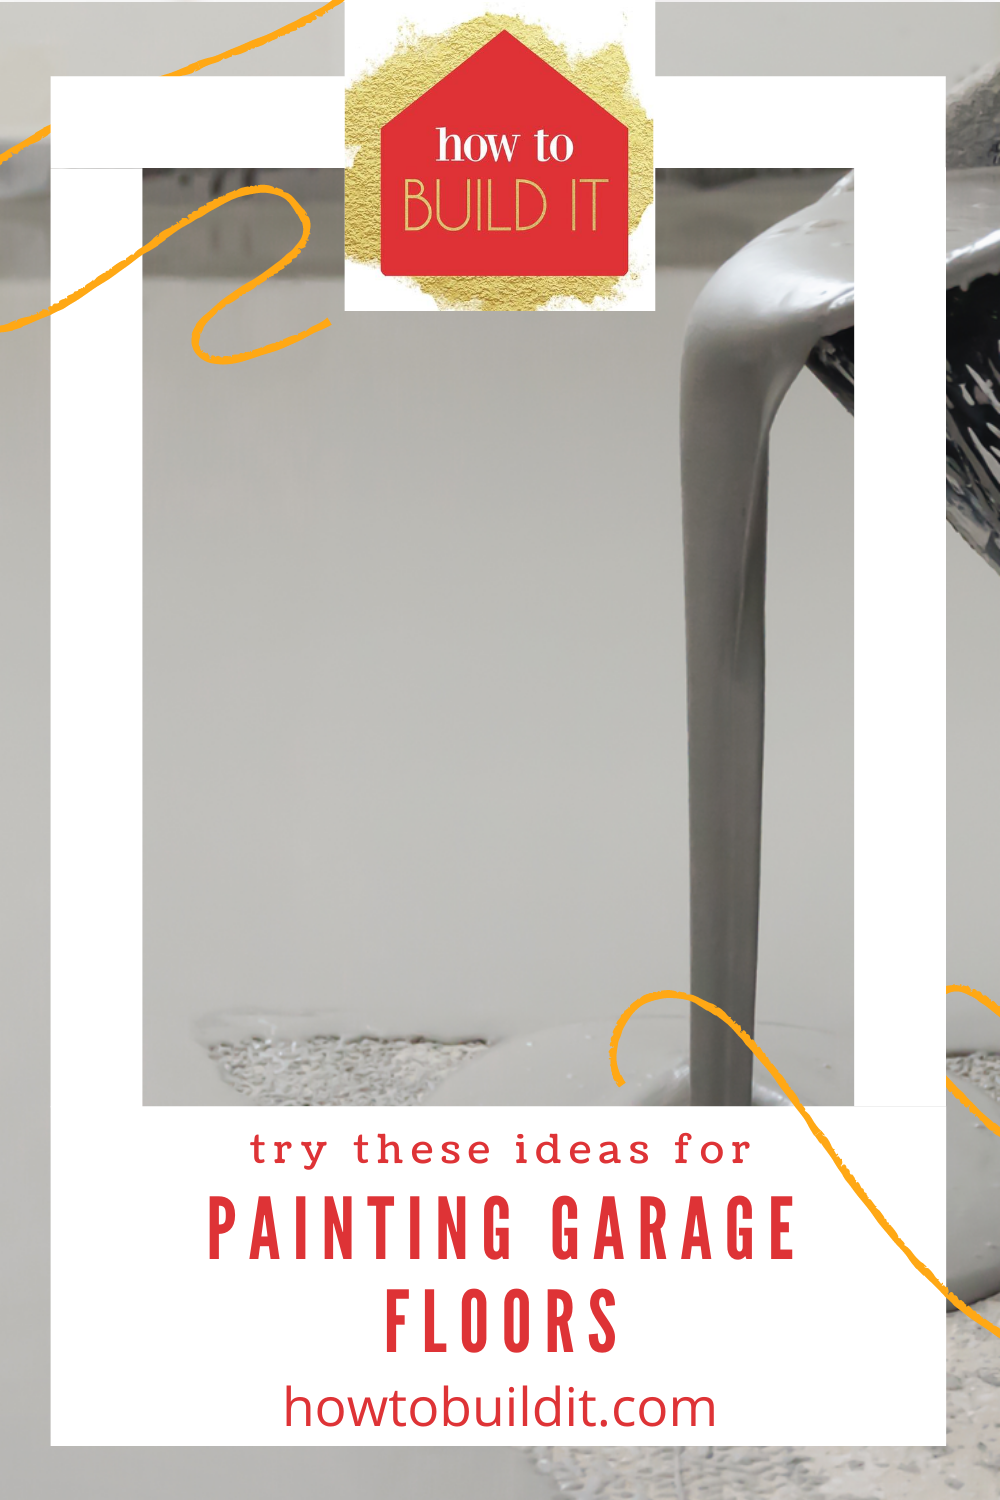 Interested in painting your own garage floor? Use these tips and tricks! These tips and tricks are perfect for painting garage floors. #garagefloors #tipsandtricks #howtobuilditblog